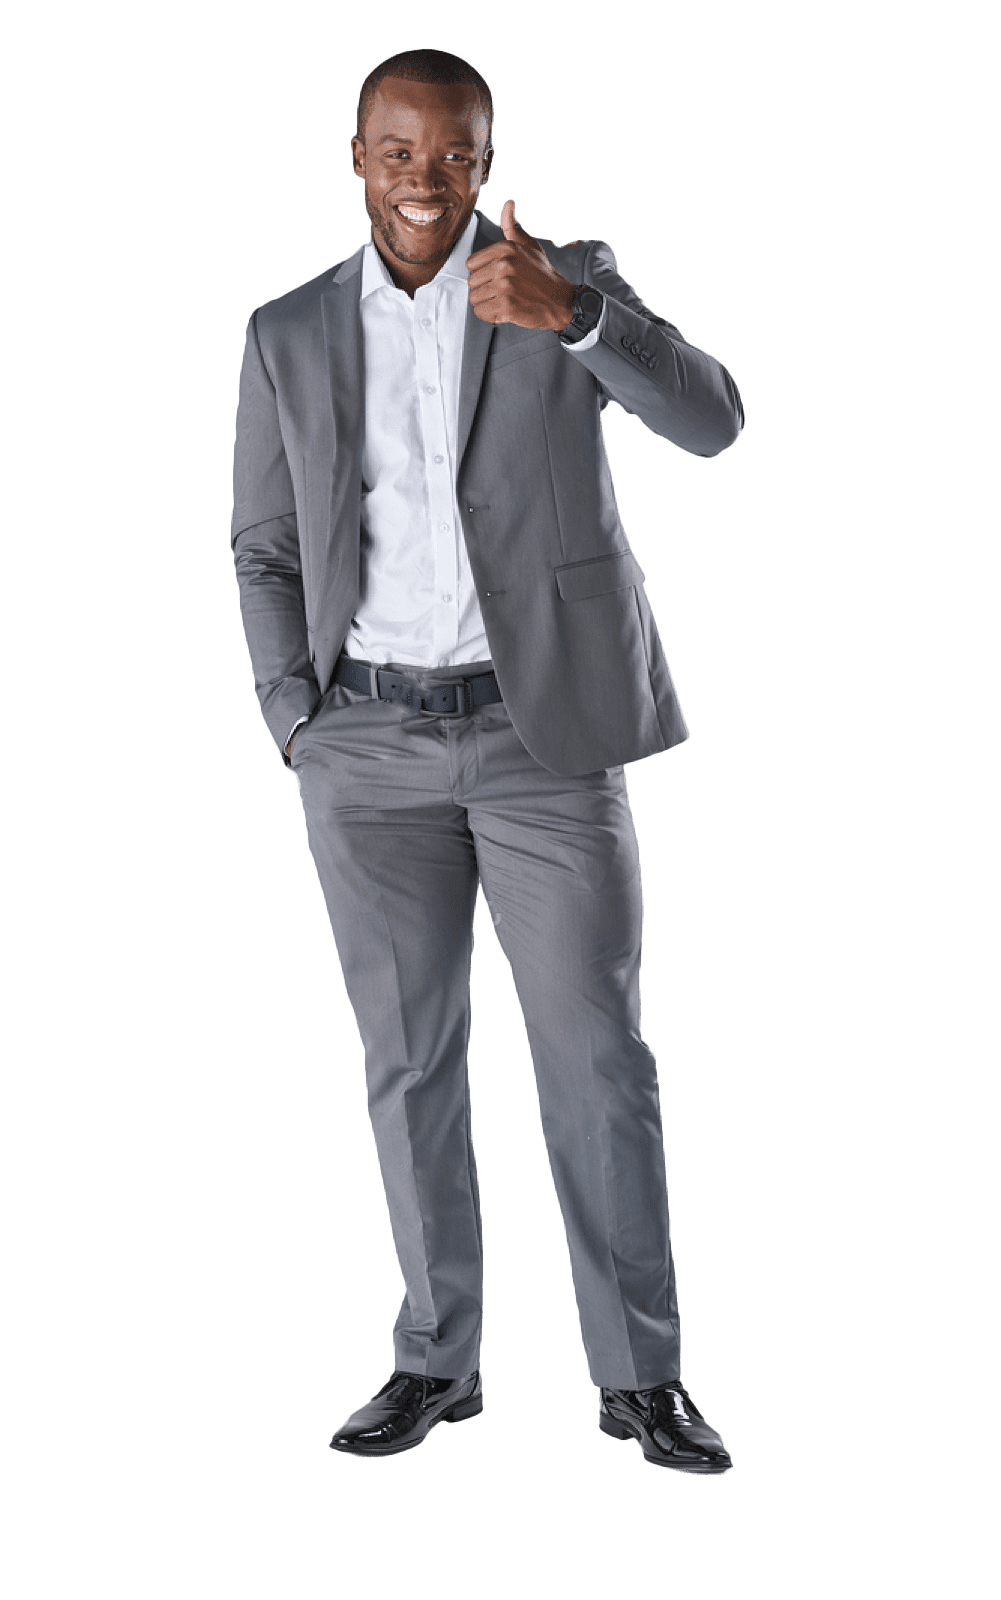 stock-photo-smiling-happy-african-black-businessman-giving-a-thumbs-up-in-studio-402661789